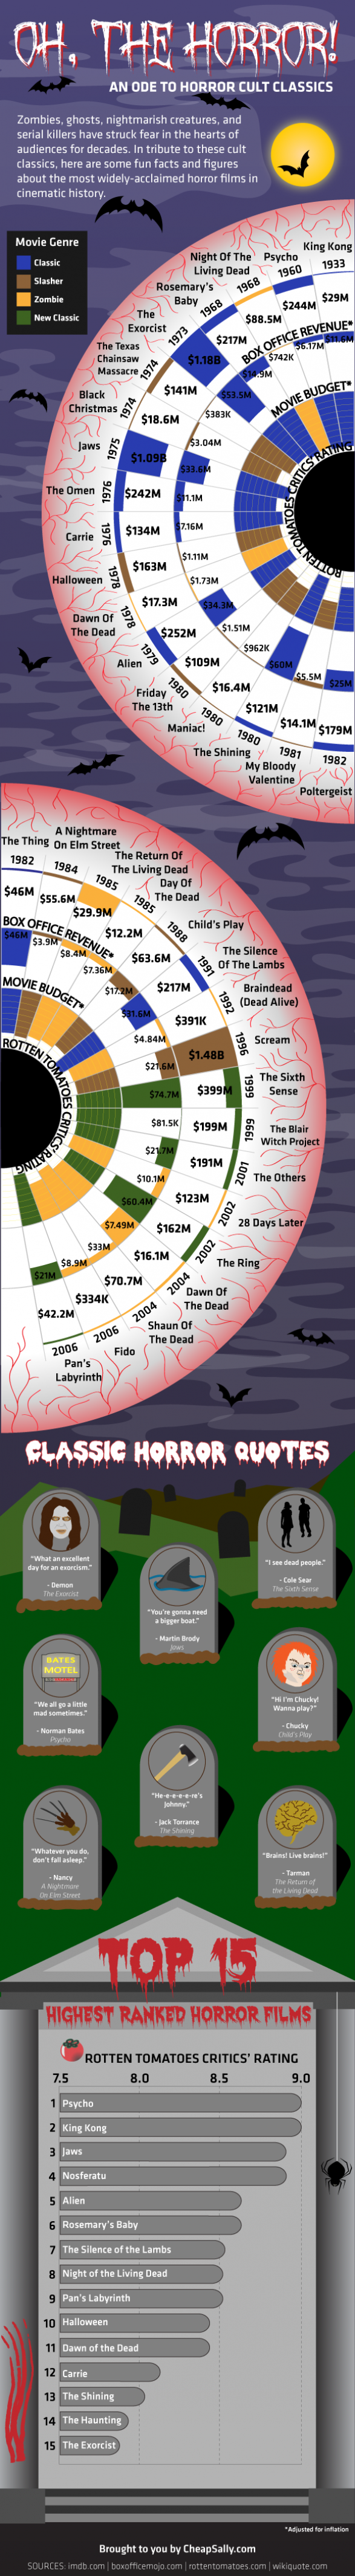 oh the horror an ode to horror cult classics 50290d619fb35 w587 Need info on horror films, why not check out this infographic